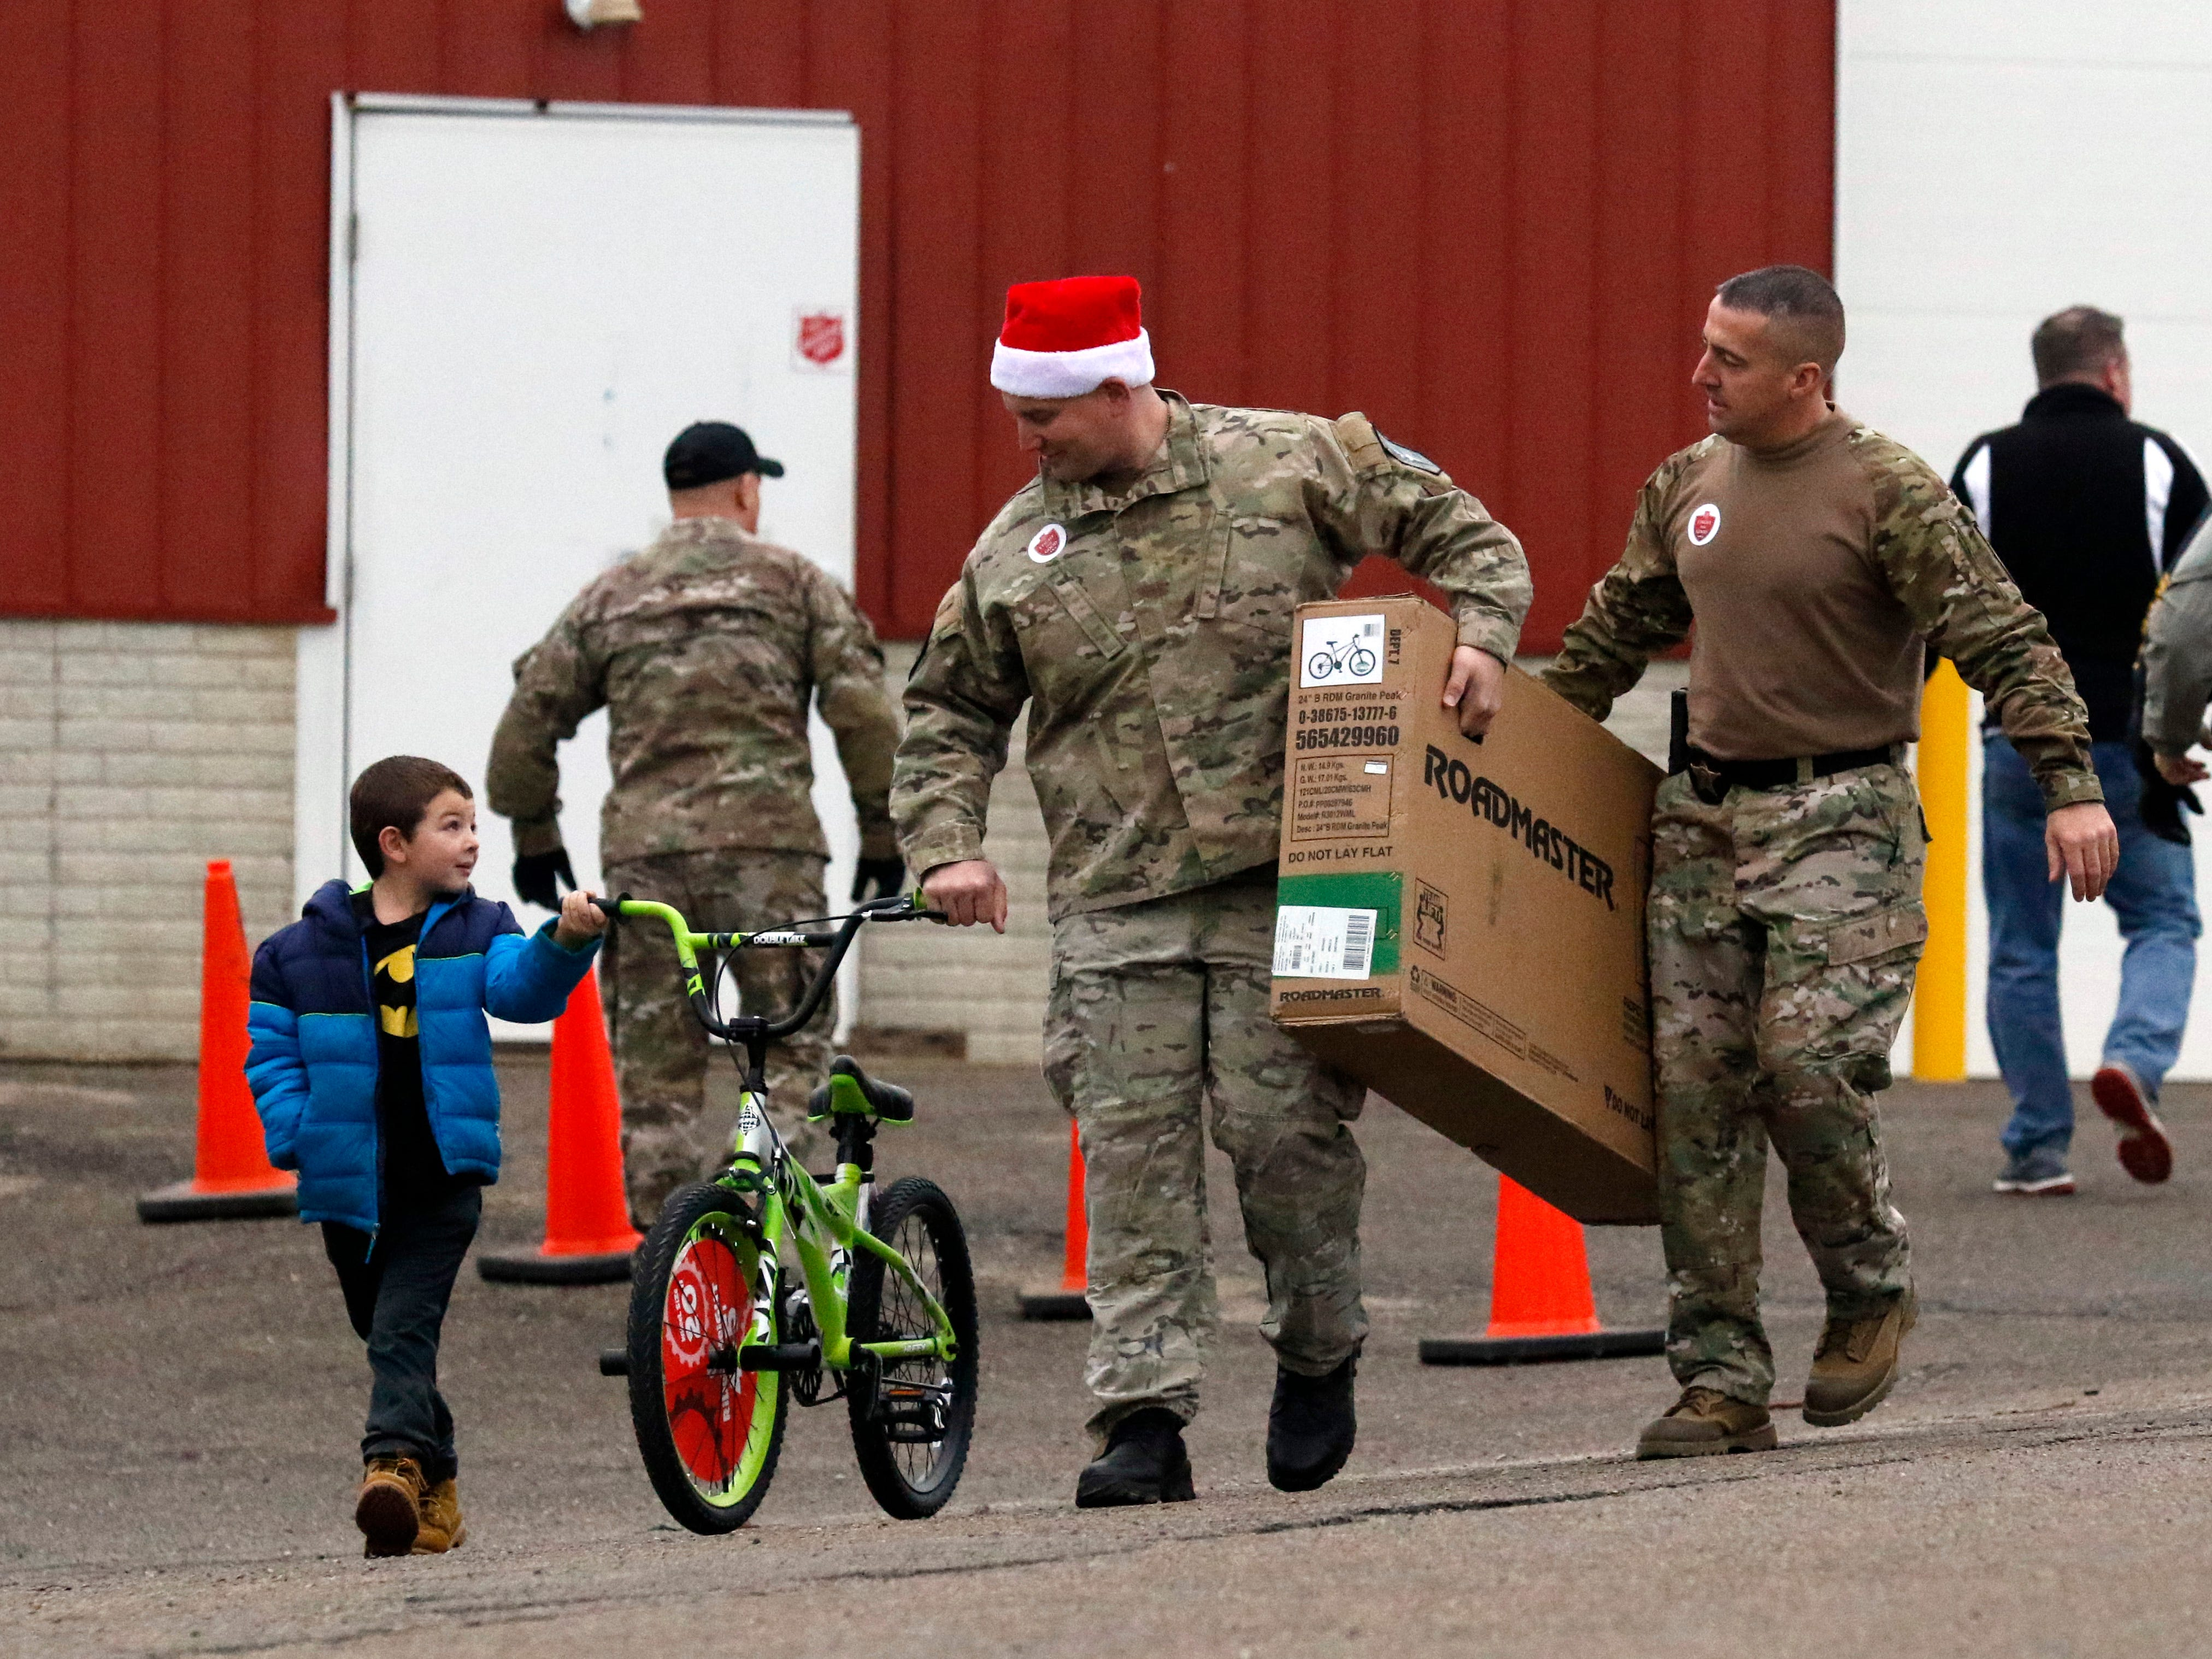 Robert Synder, 6, left, talks to Fairfield County Sheriff's Deputies Shawn Meloy, center, and T.J. Strawn Friday morning, Dec. 21, 2018, as they walk bicycles to Josh Wade and Mindy Wade's truck at the Fairfield County Fairgrounds. The bicycles and other presents were from the Salvation Army of Fairfield County's annual Christmas Cheer donation drive. This year's drive collected presents for more than 800 children throughout the county. Members of the sheriff's office S.W.A.T. helped carry gifts to recipient's vehicles.